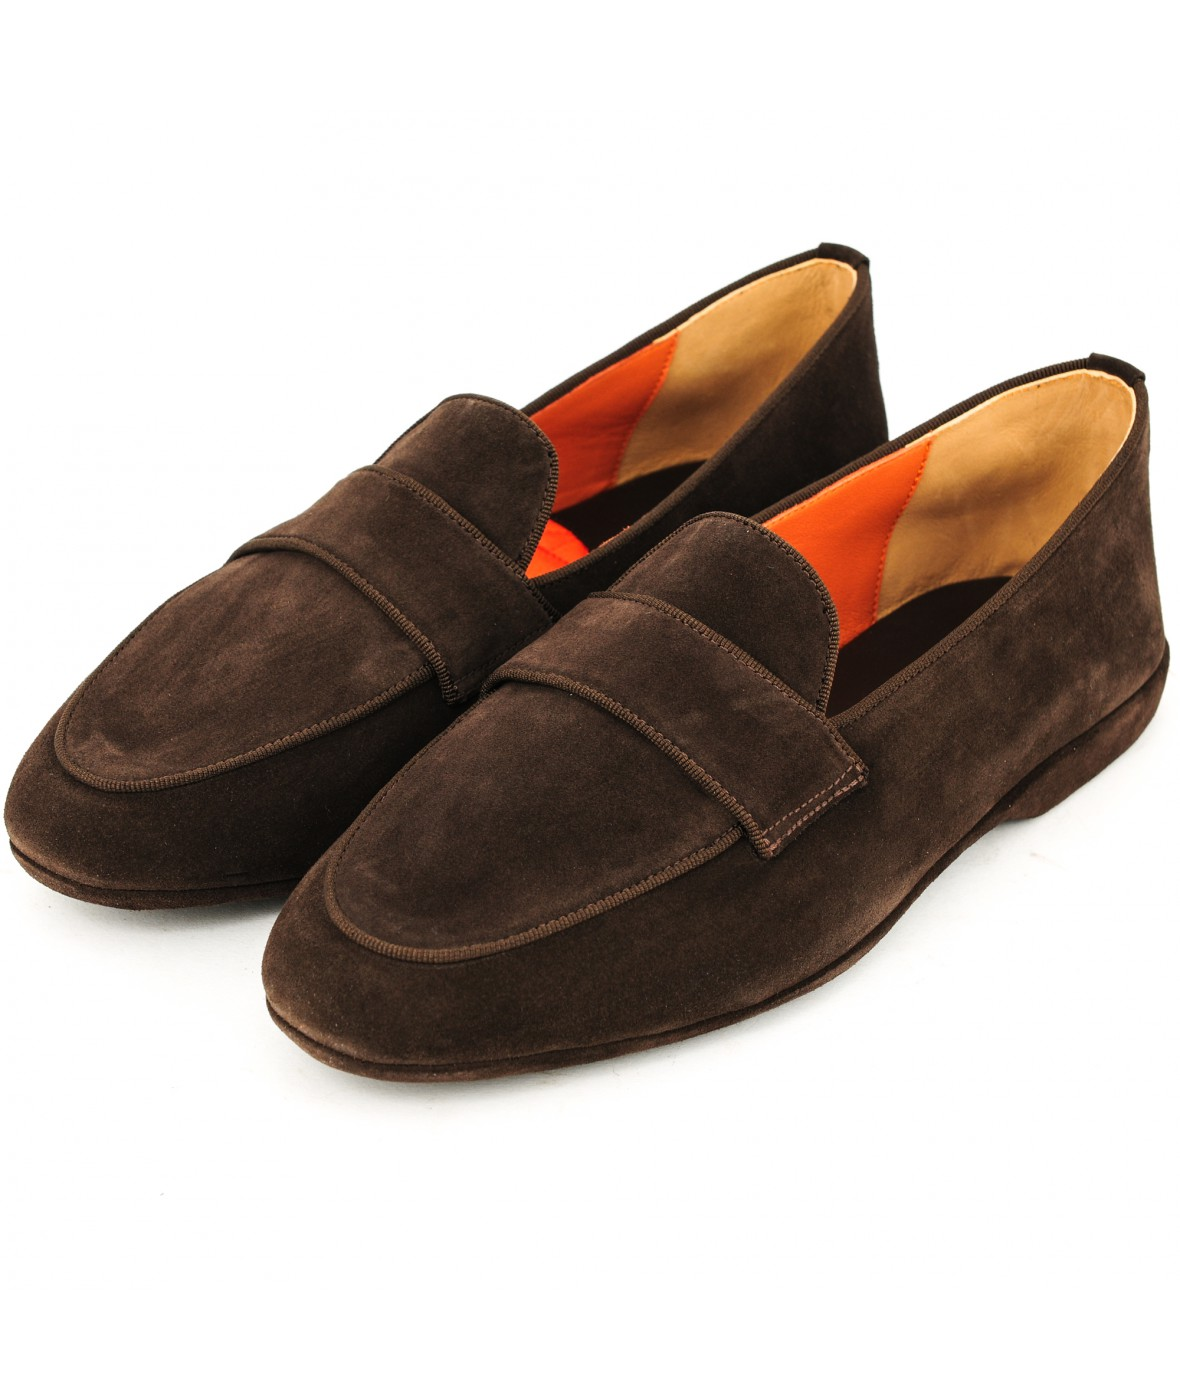 Santoni Slippers Brown (31676)